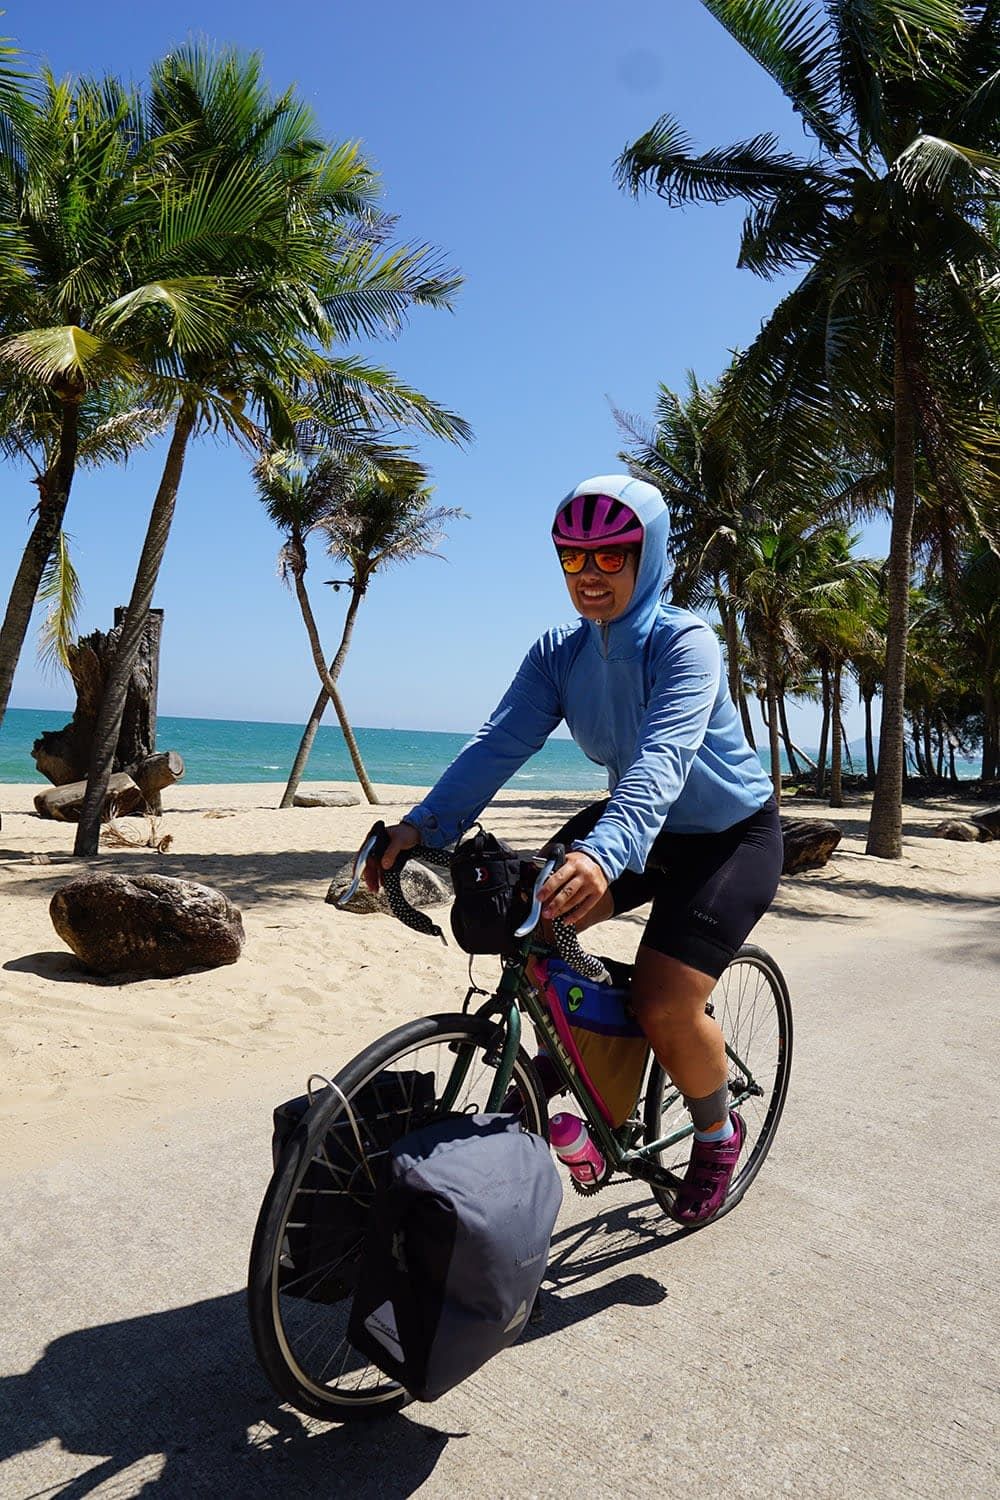 Cycling in the heat of the day, trying to keep the sun off - Ban Krood Beach, Thailand